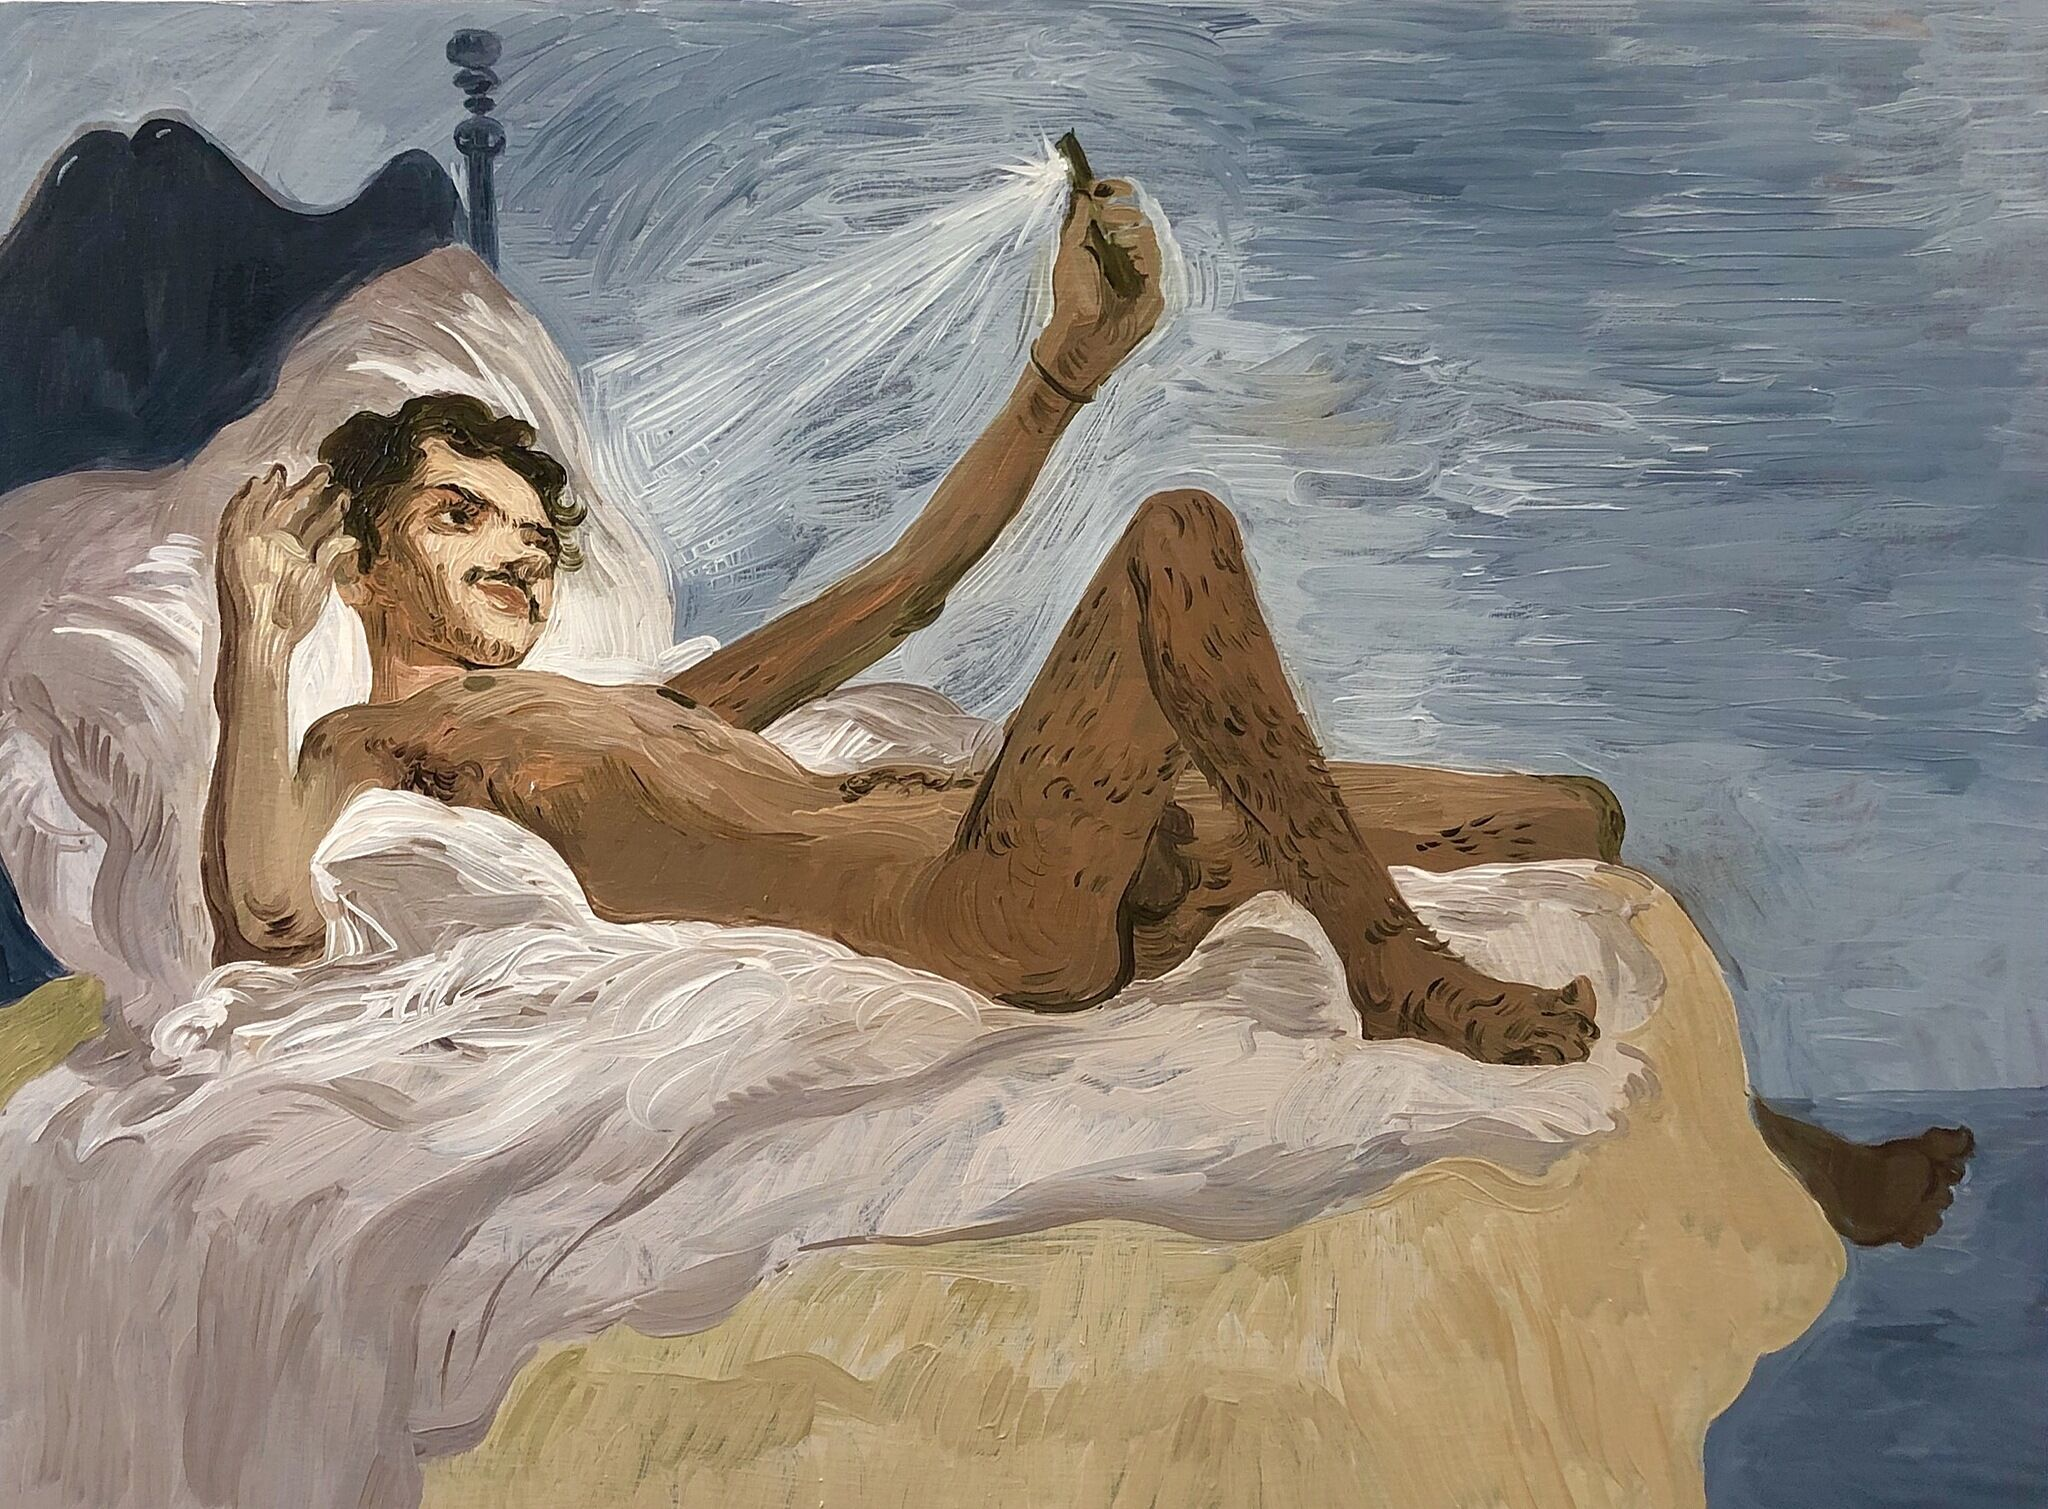 A painting of a person naked in bed taking a photo of themselves.